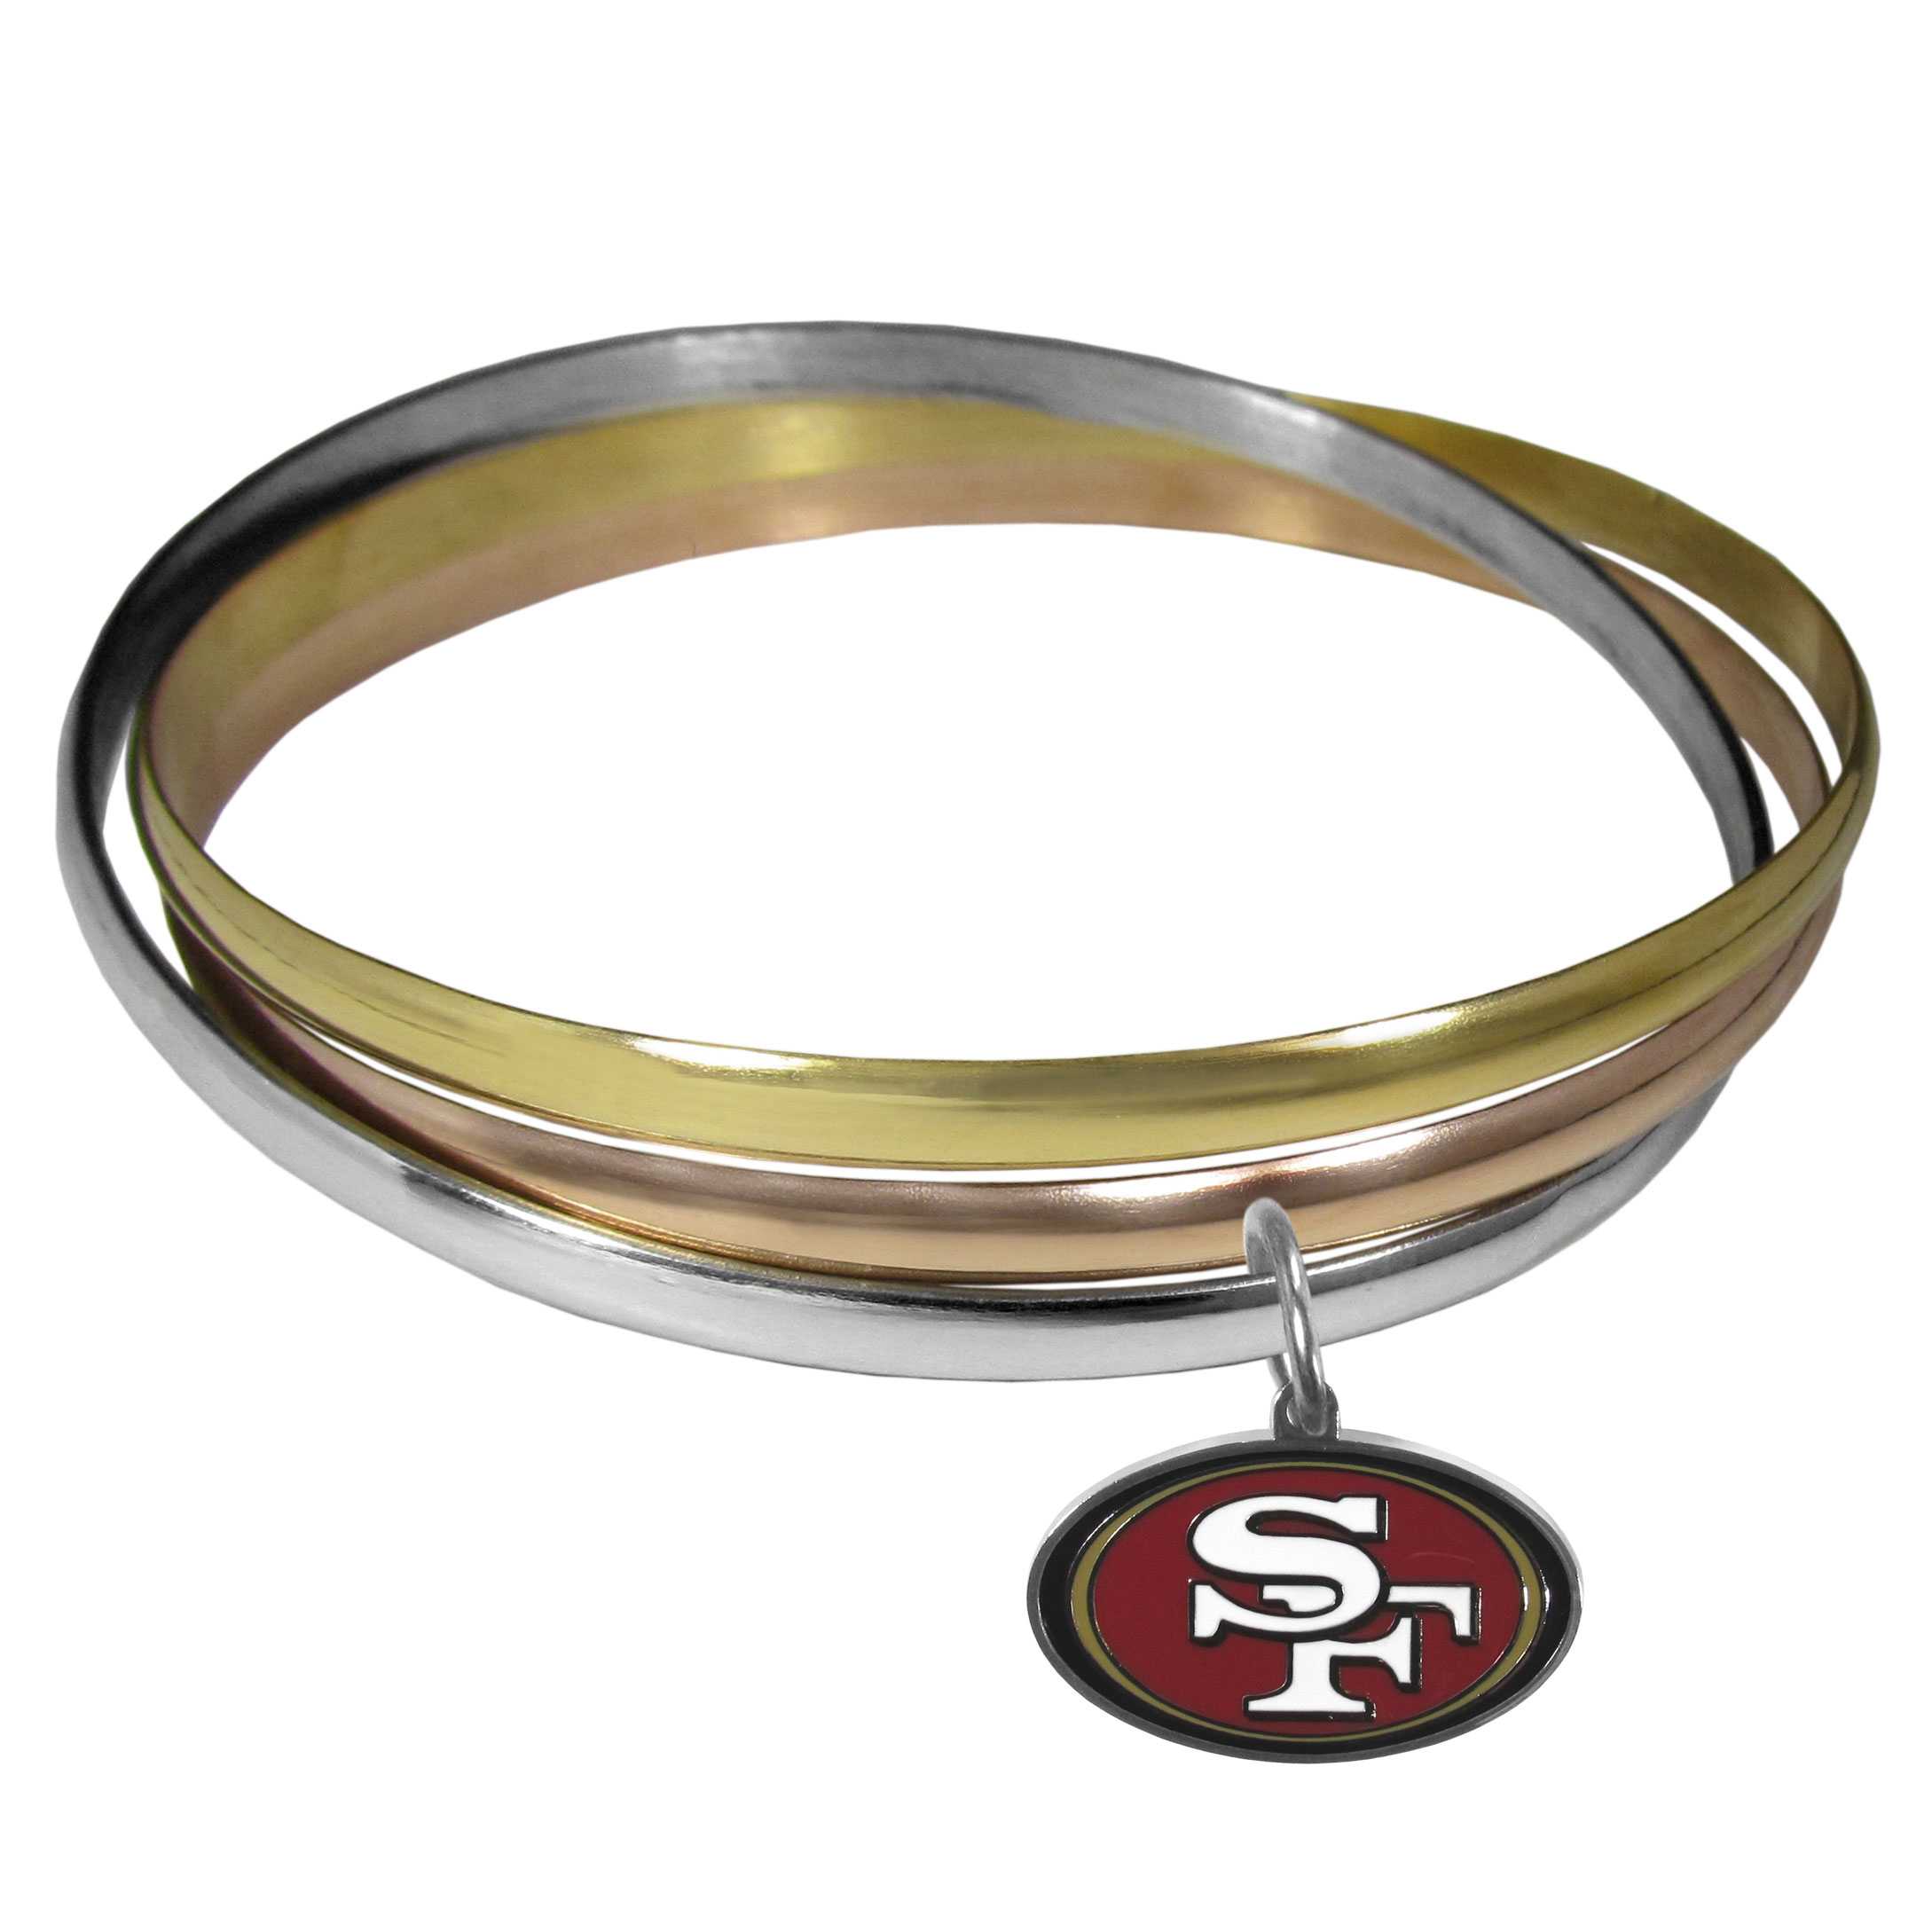 San Francisco 49ers Tri-color Bangle Bracelet - These beautiful bangles come in a interlocking style and feature a fully cast San Francisco 49ers charm with enameled team colors. The bracelet has a silver toned bangle, gold tone bangle and brass toned bangle.